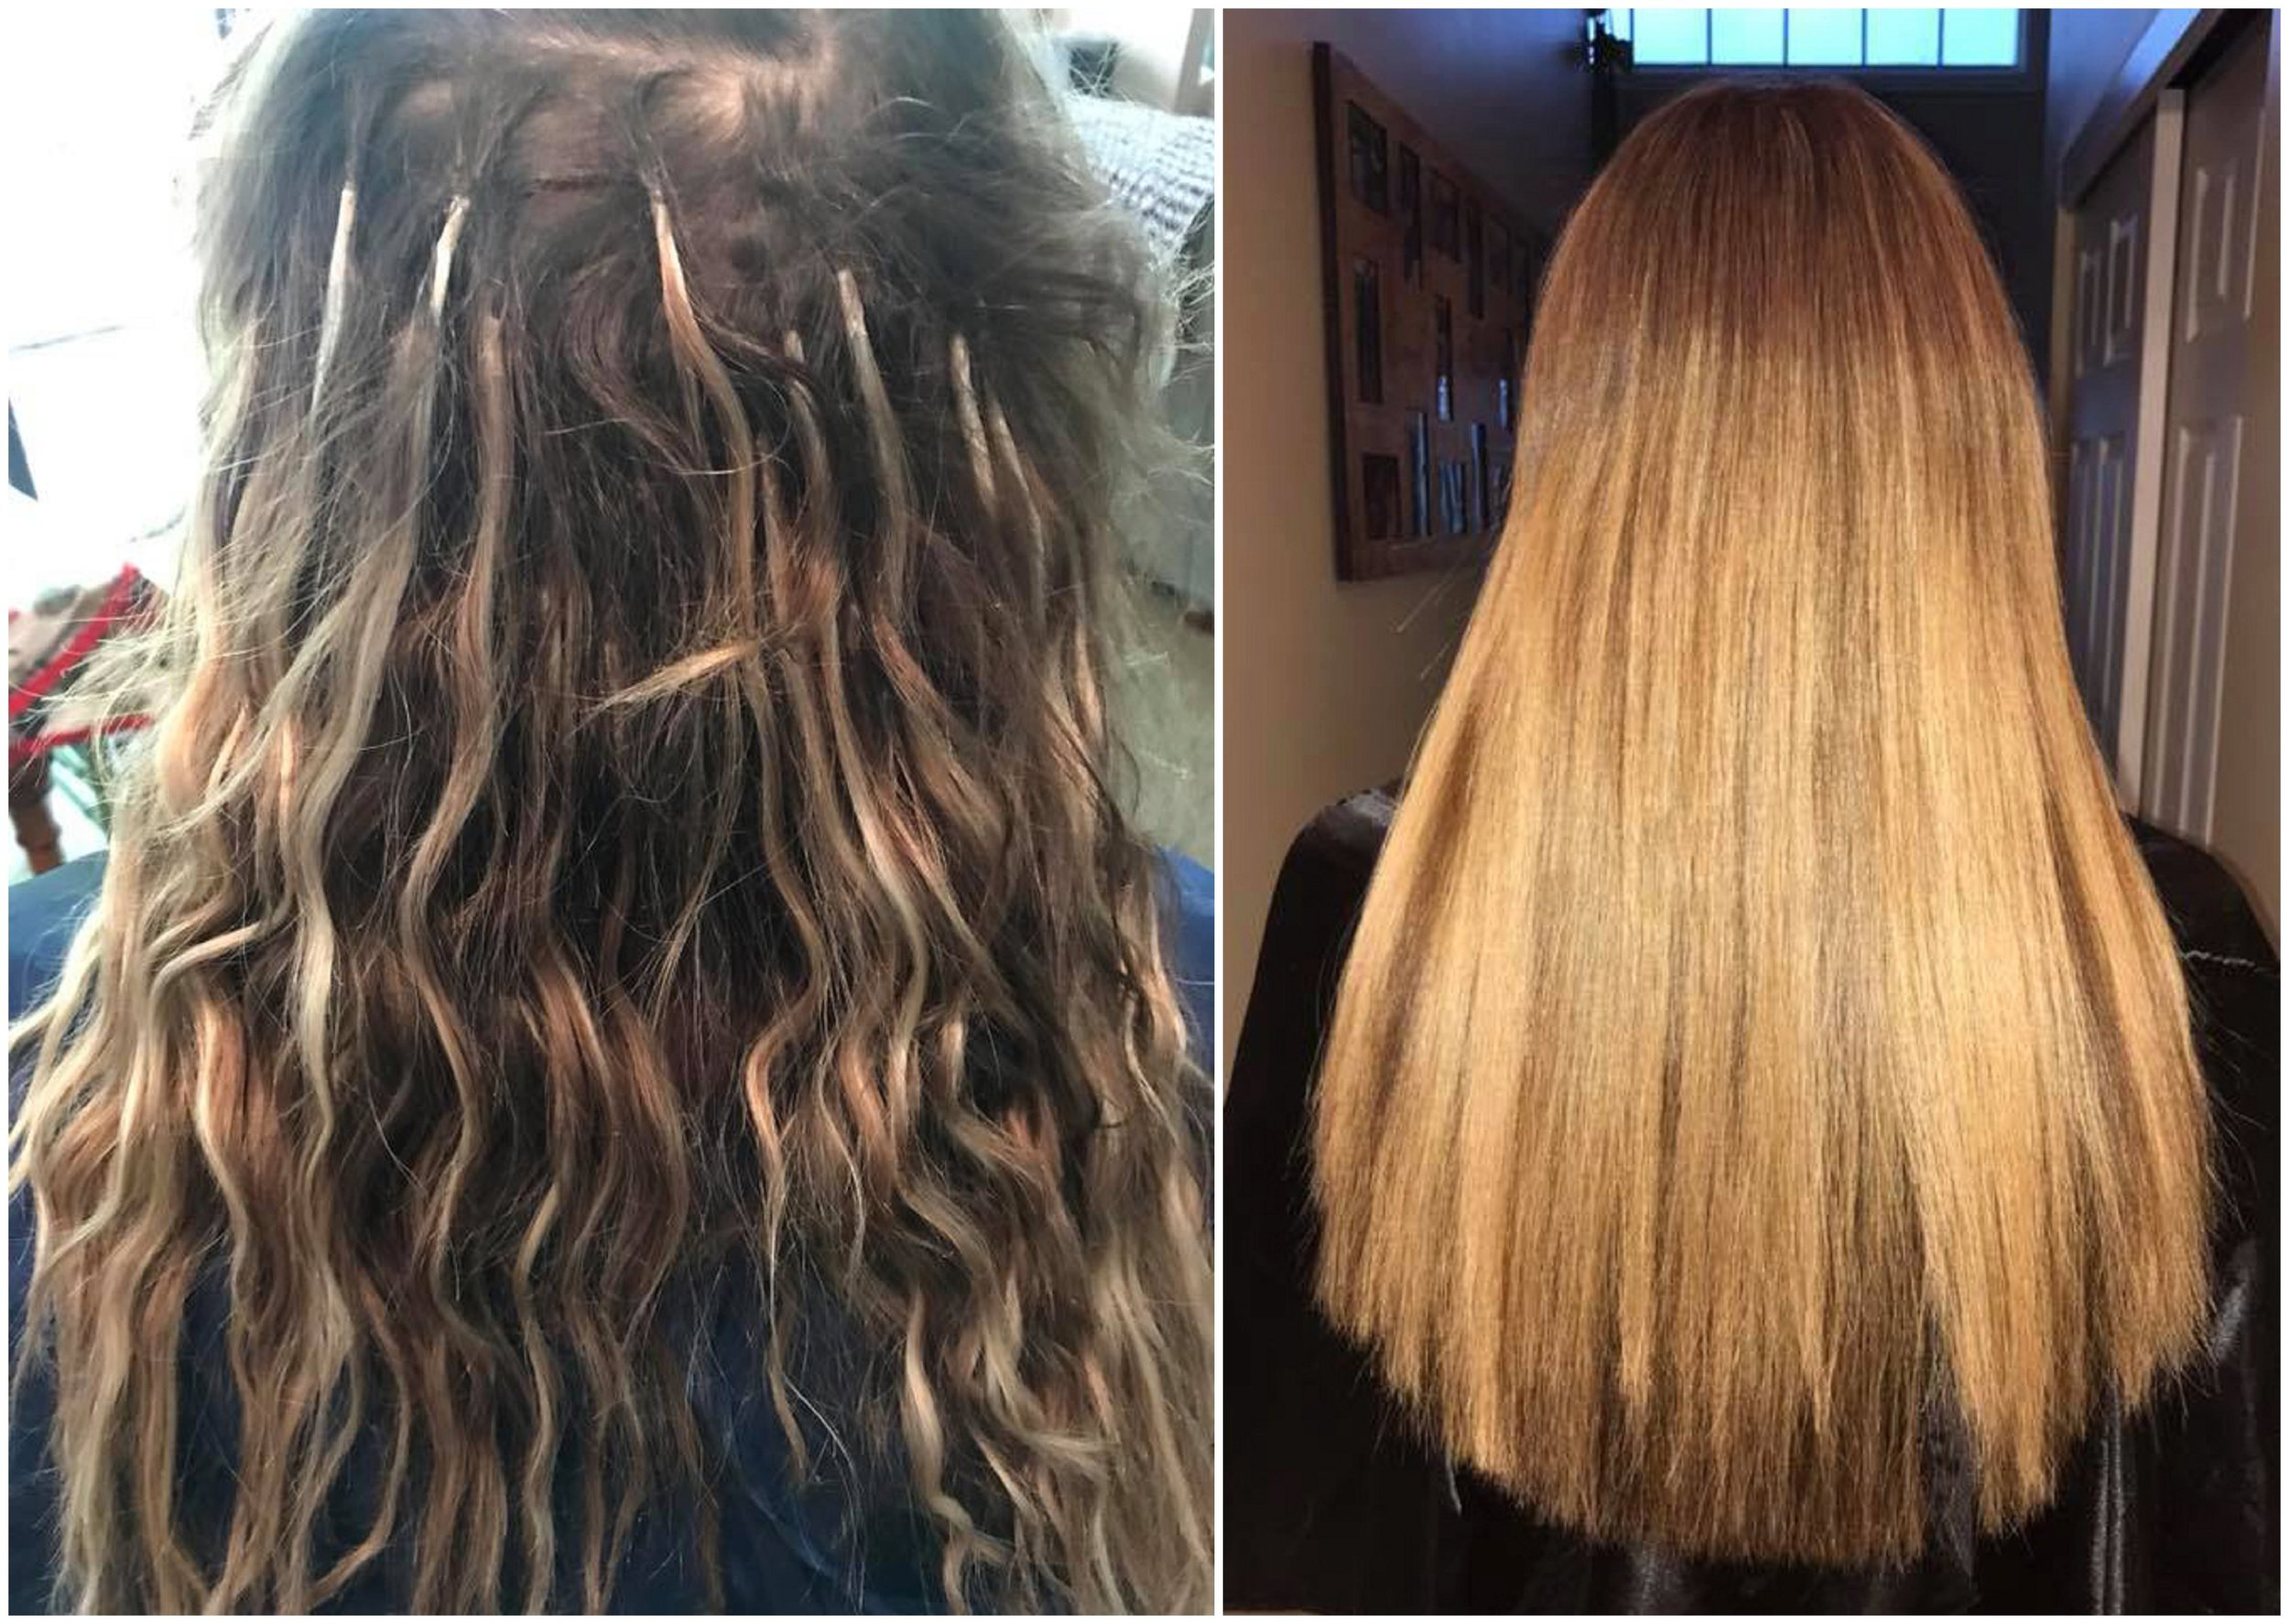 """Sharon (Extensions) - """"You are amazing! I love my extensions and I love your work, you truly are a perfectionist! My natural hair looks and feels so healthy and has grown so much after wearing Great Lengths for one year but as you stated, I just LOVE the added fullness and length they give me.You certainly are the BEST!!"""""""